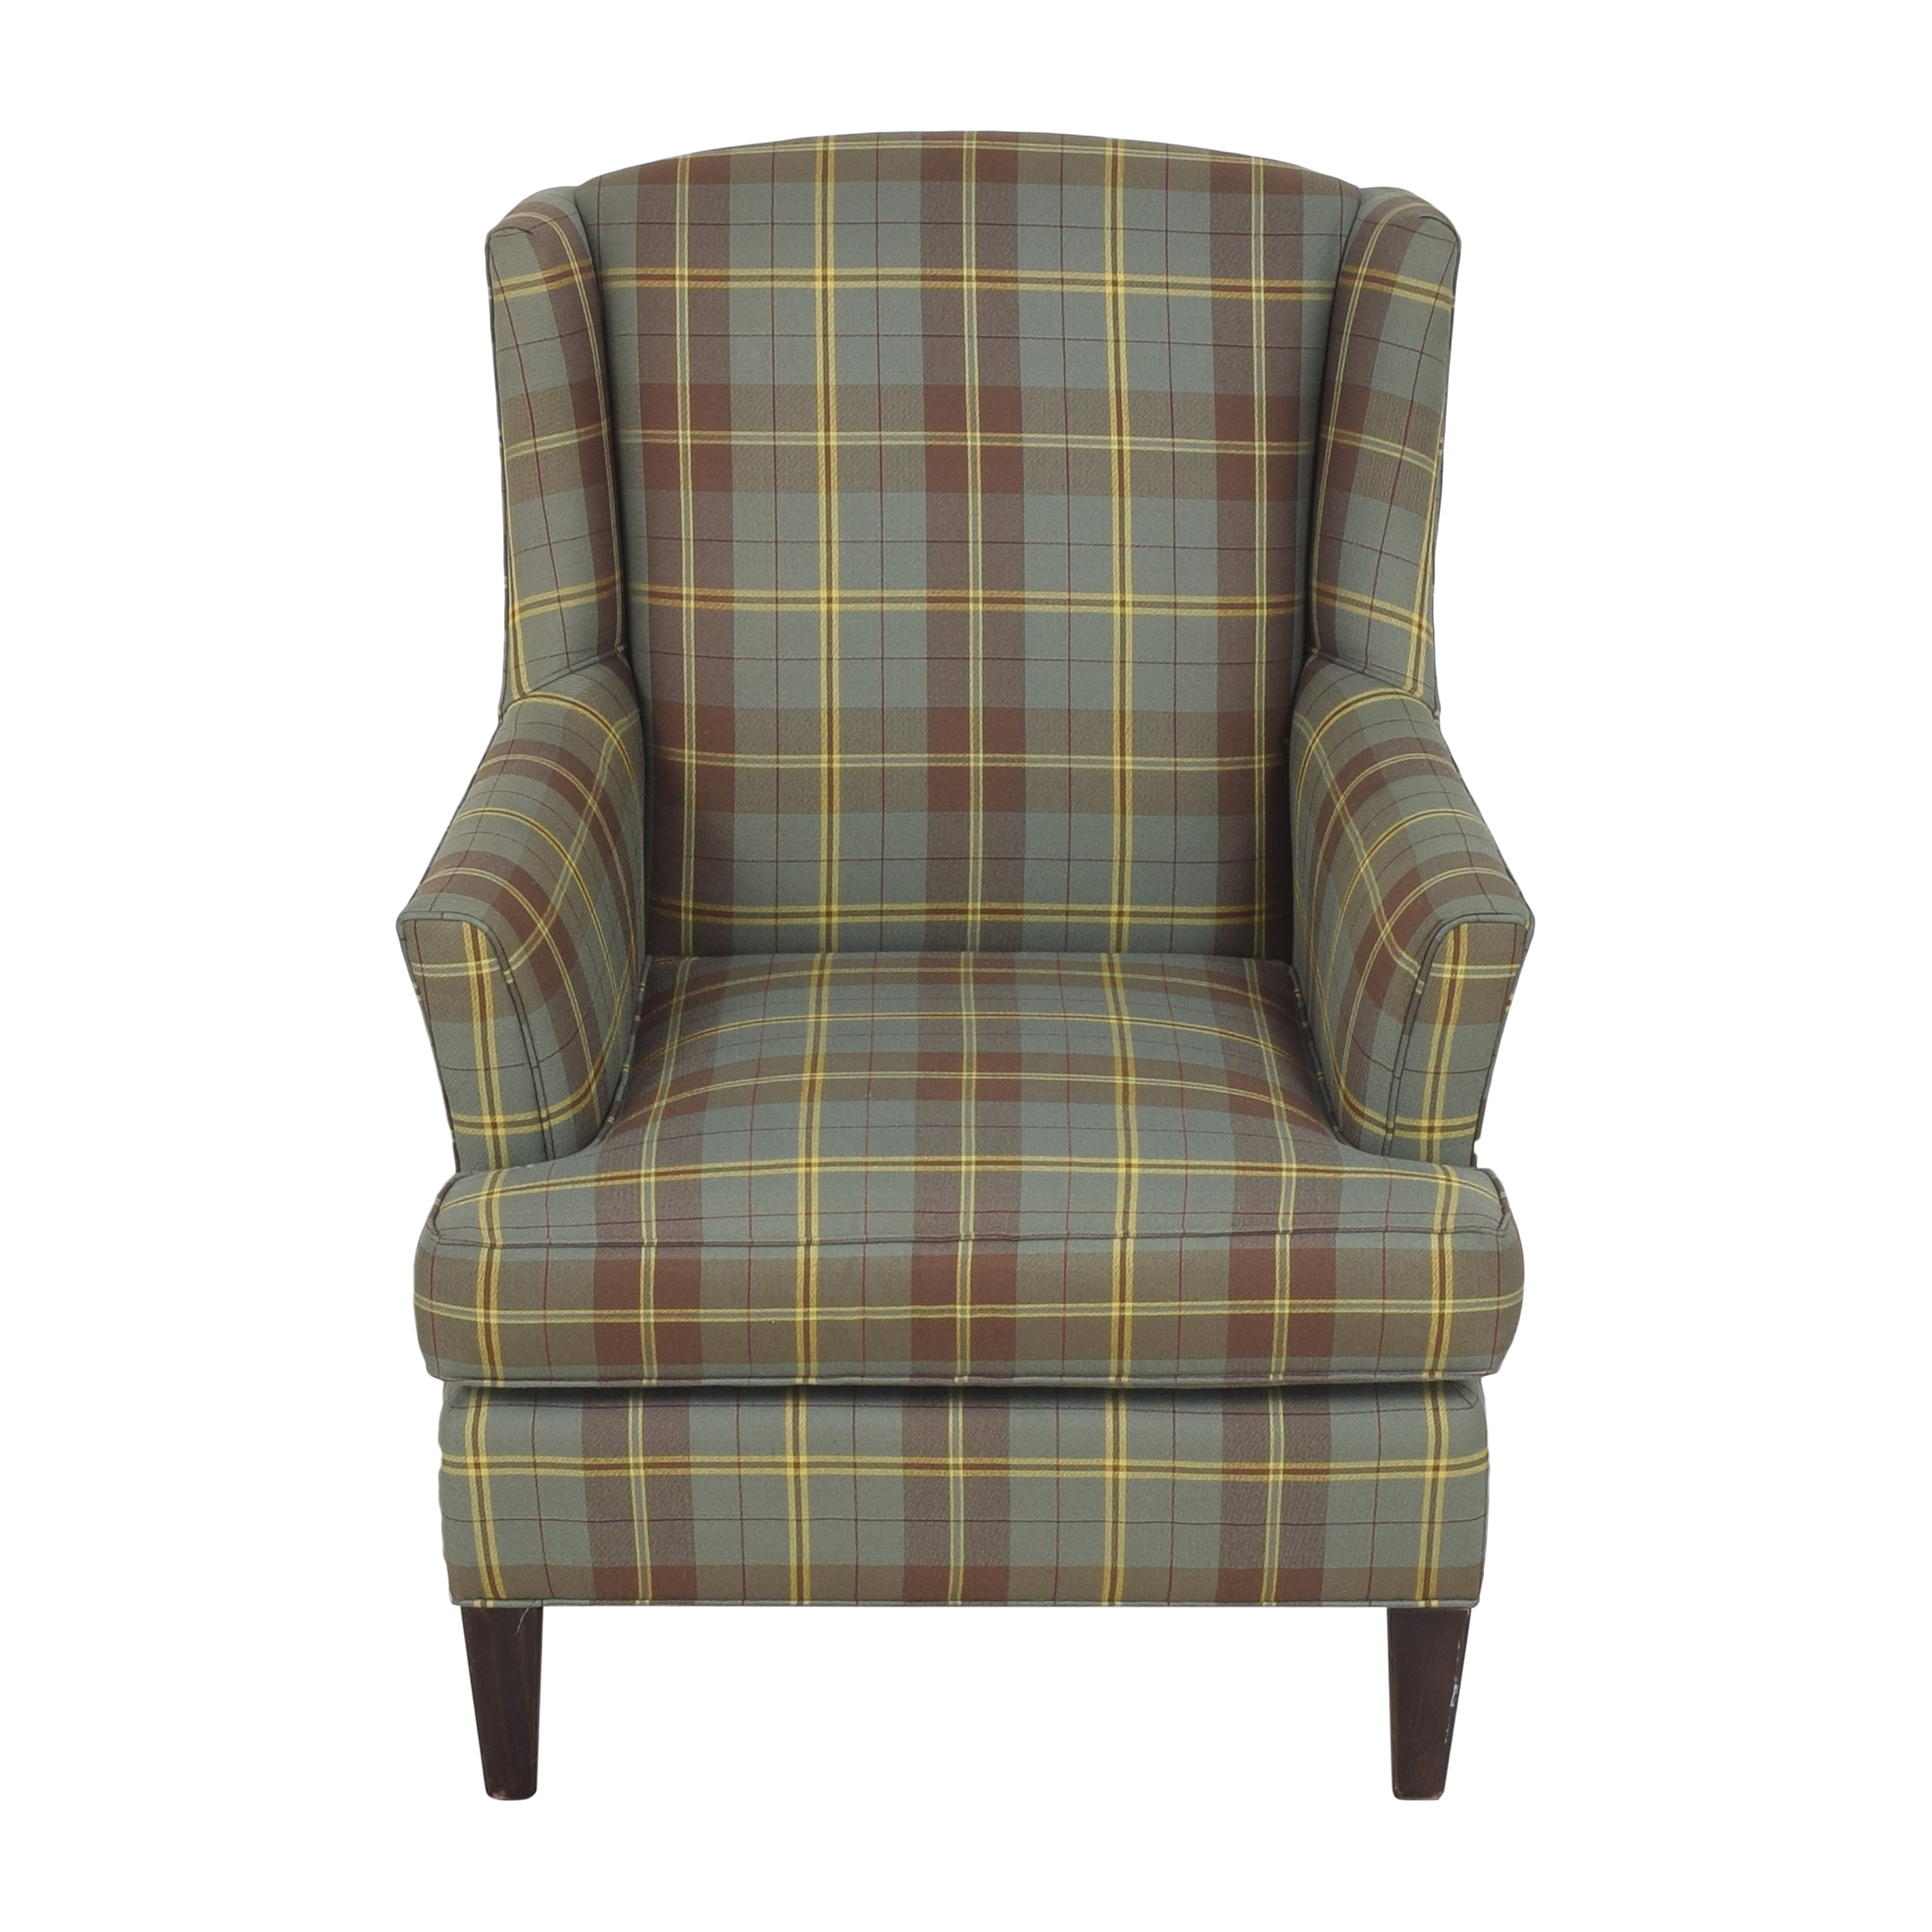 Crate & Barrel Crate & Barrel Wingback Armchair Chairs